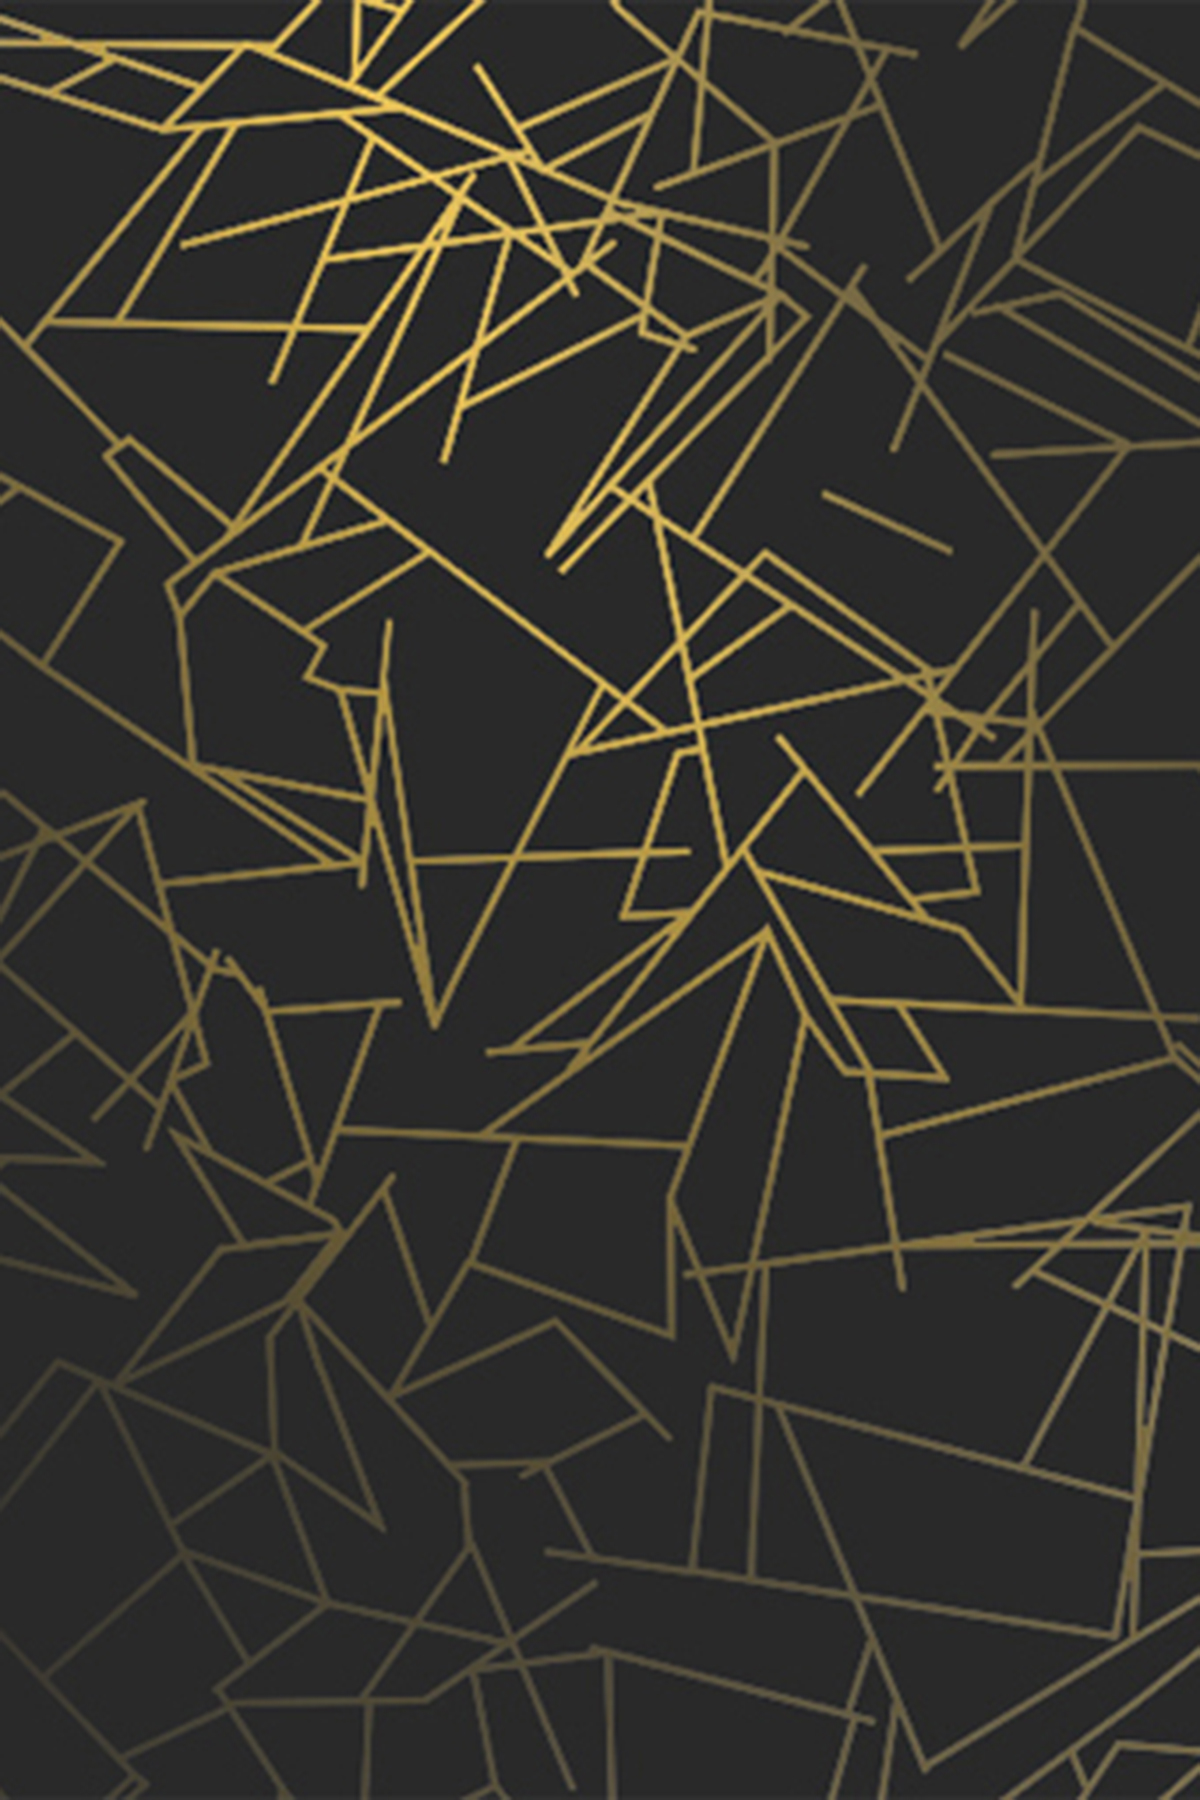 Gold And Black Wallpaper Designs Angles wallpaper black gold 1200x1800